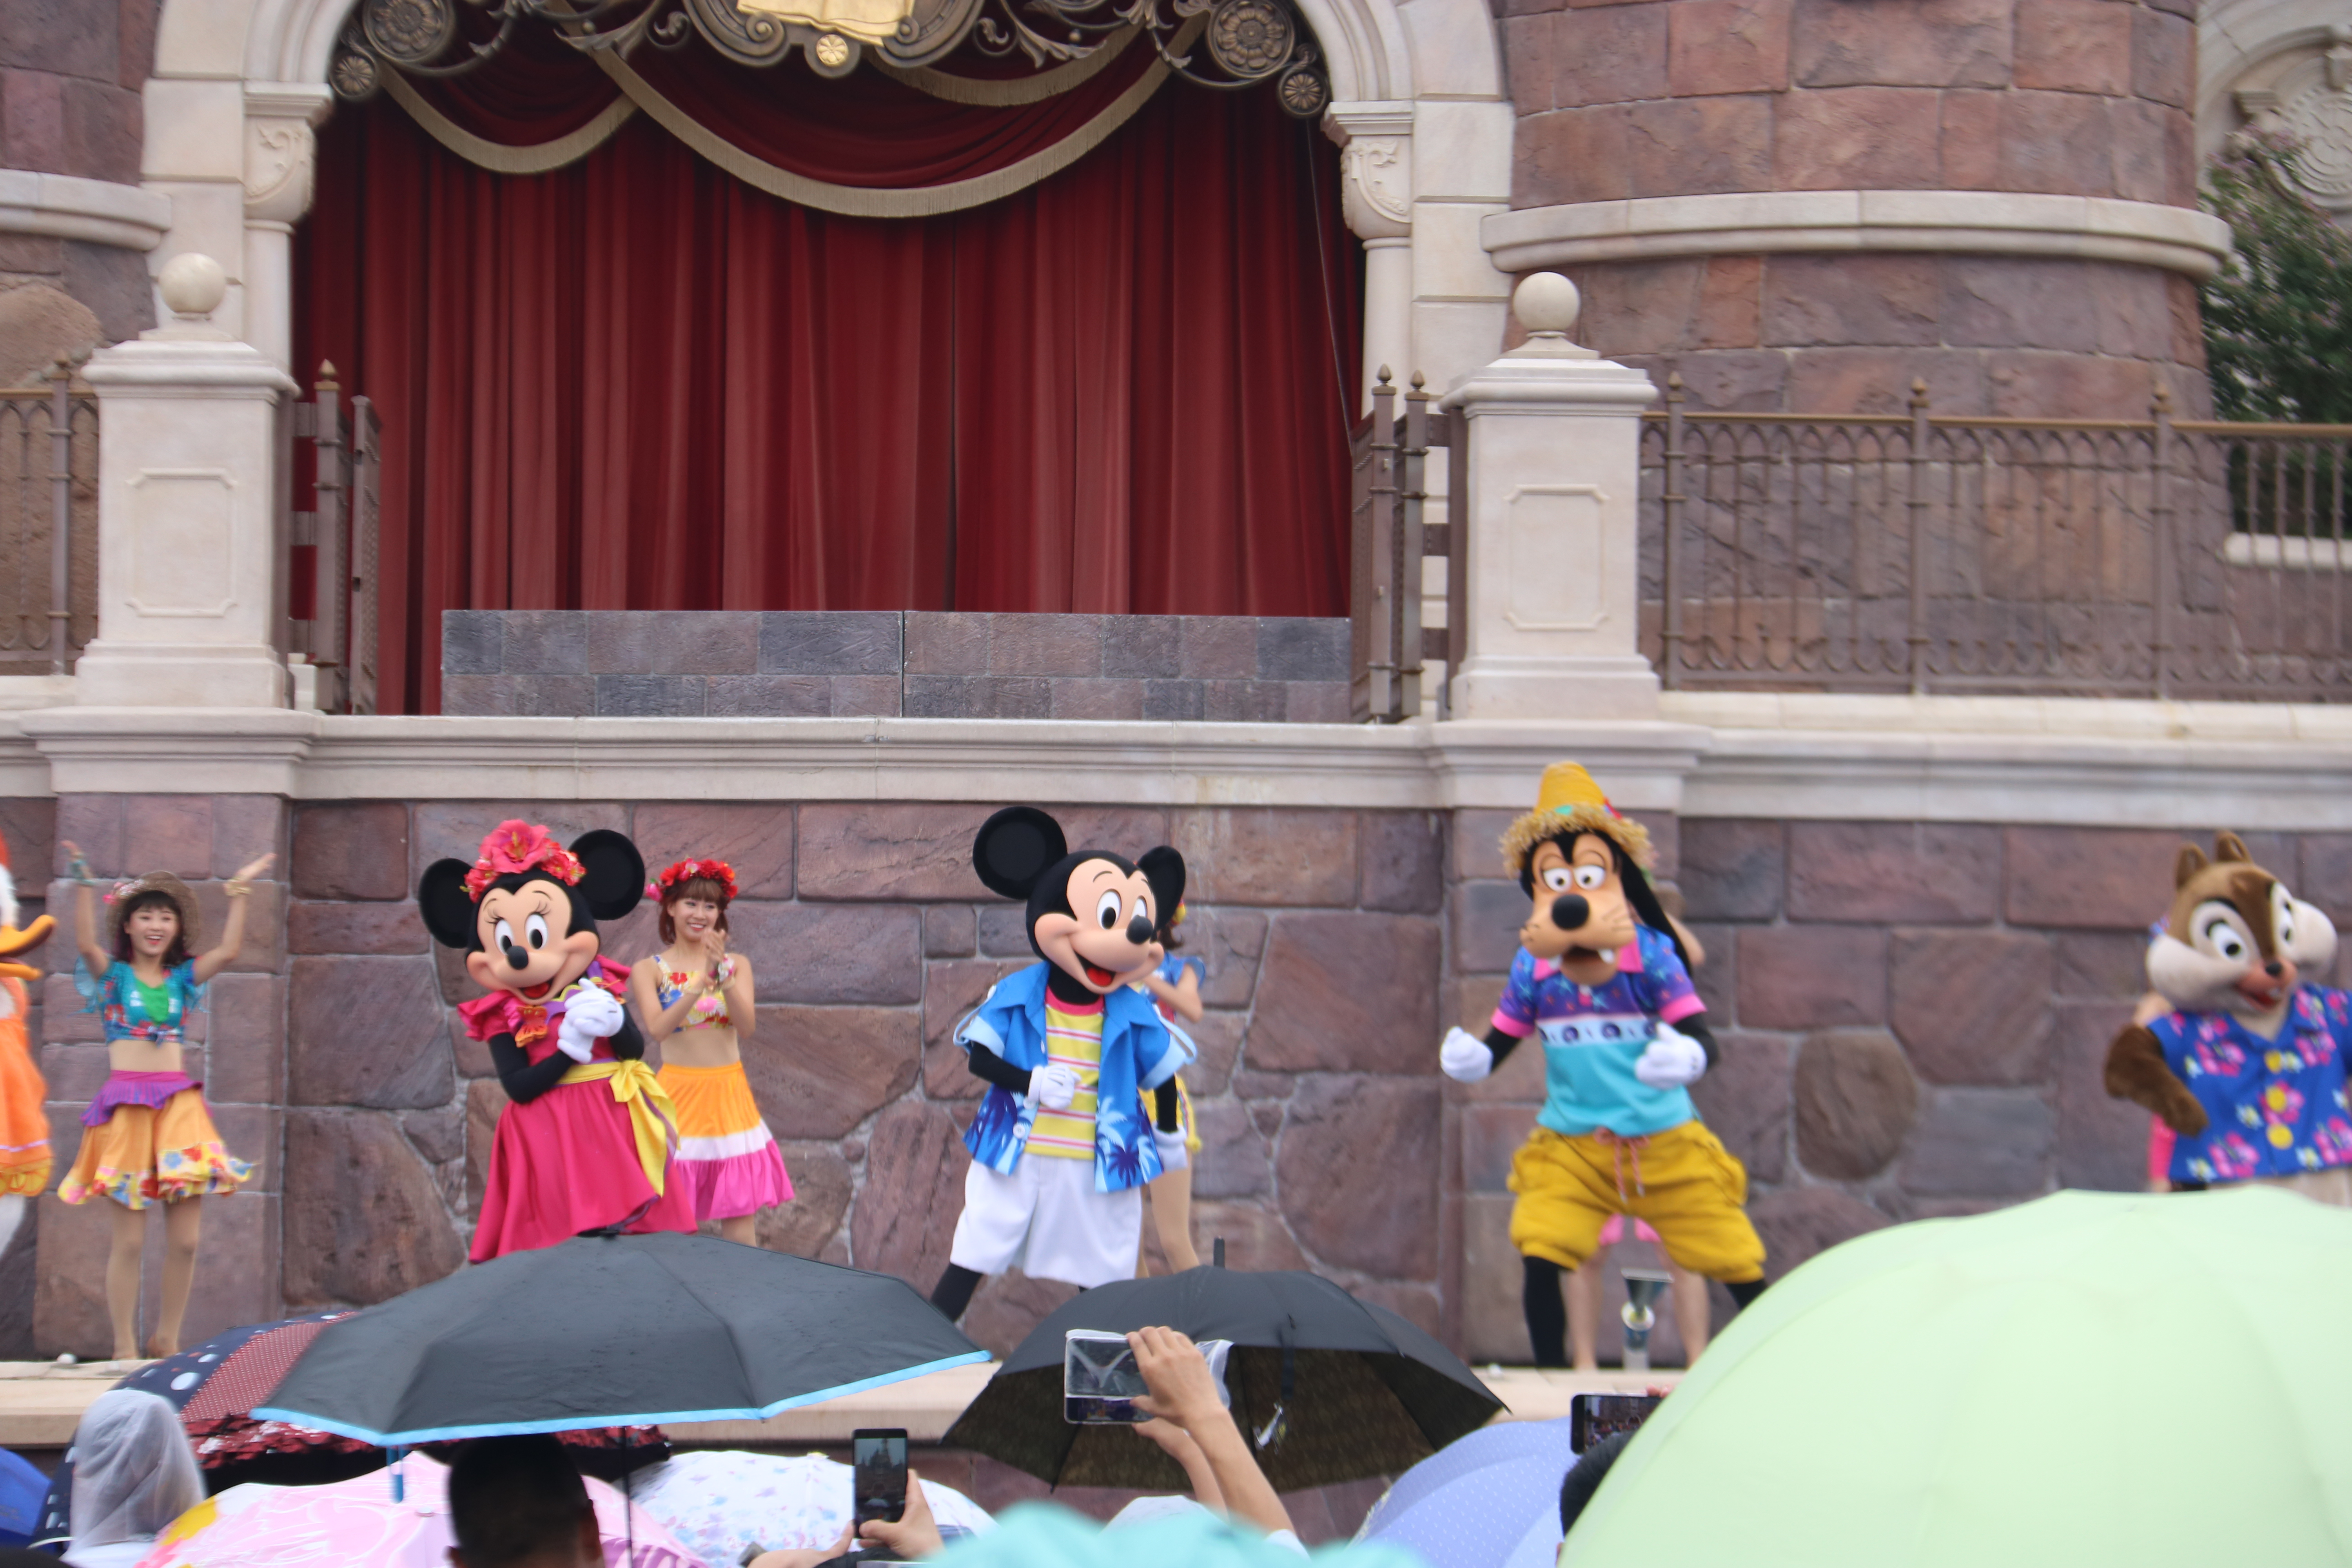 Opening Mickey, Minnie, and Goofy